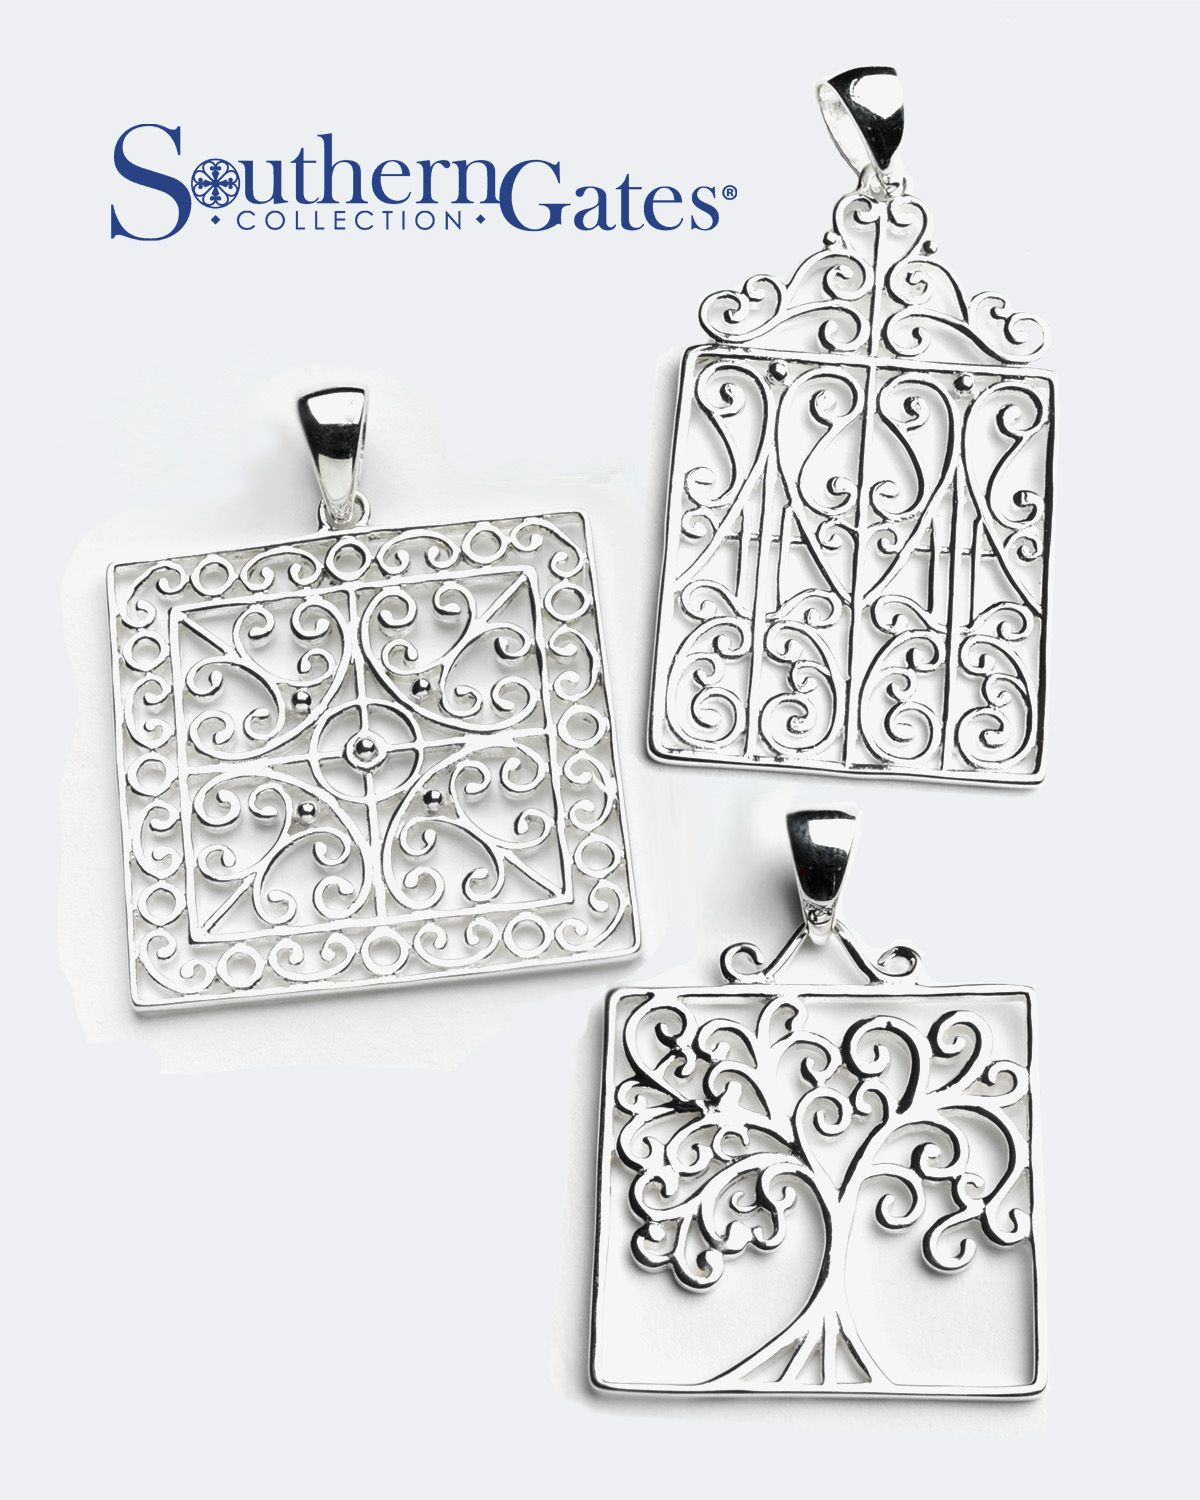 Charleston Gate Jewelry : charleston, jewelry, Square, Pendants, Southern, Gates®, Collection., (P851,, P849,, P850), Charleston, Gates, Jewelry,, Jewelry